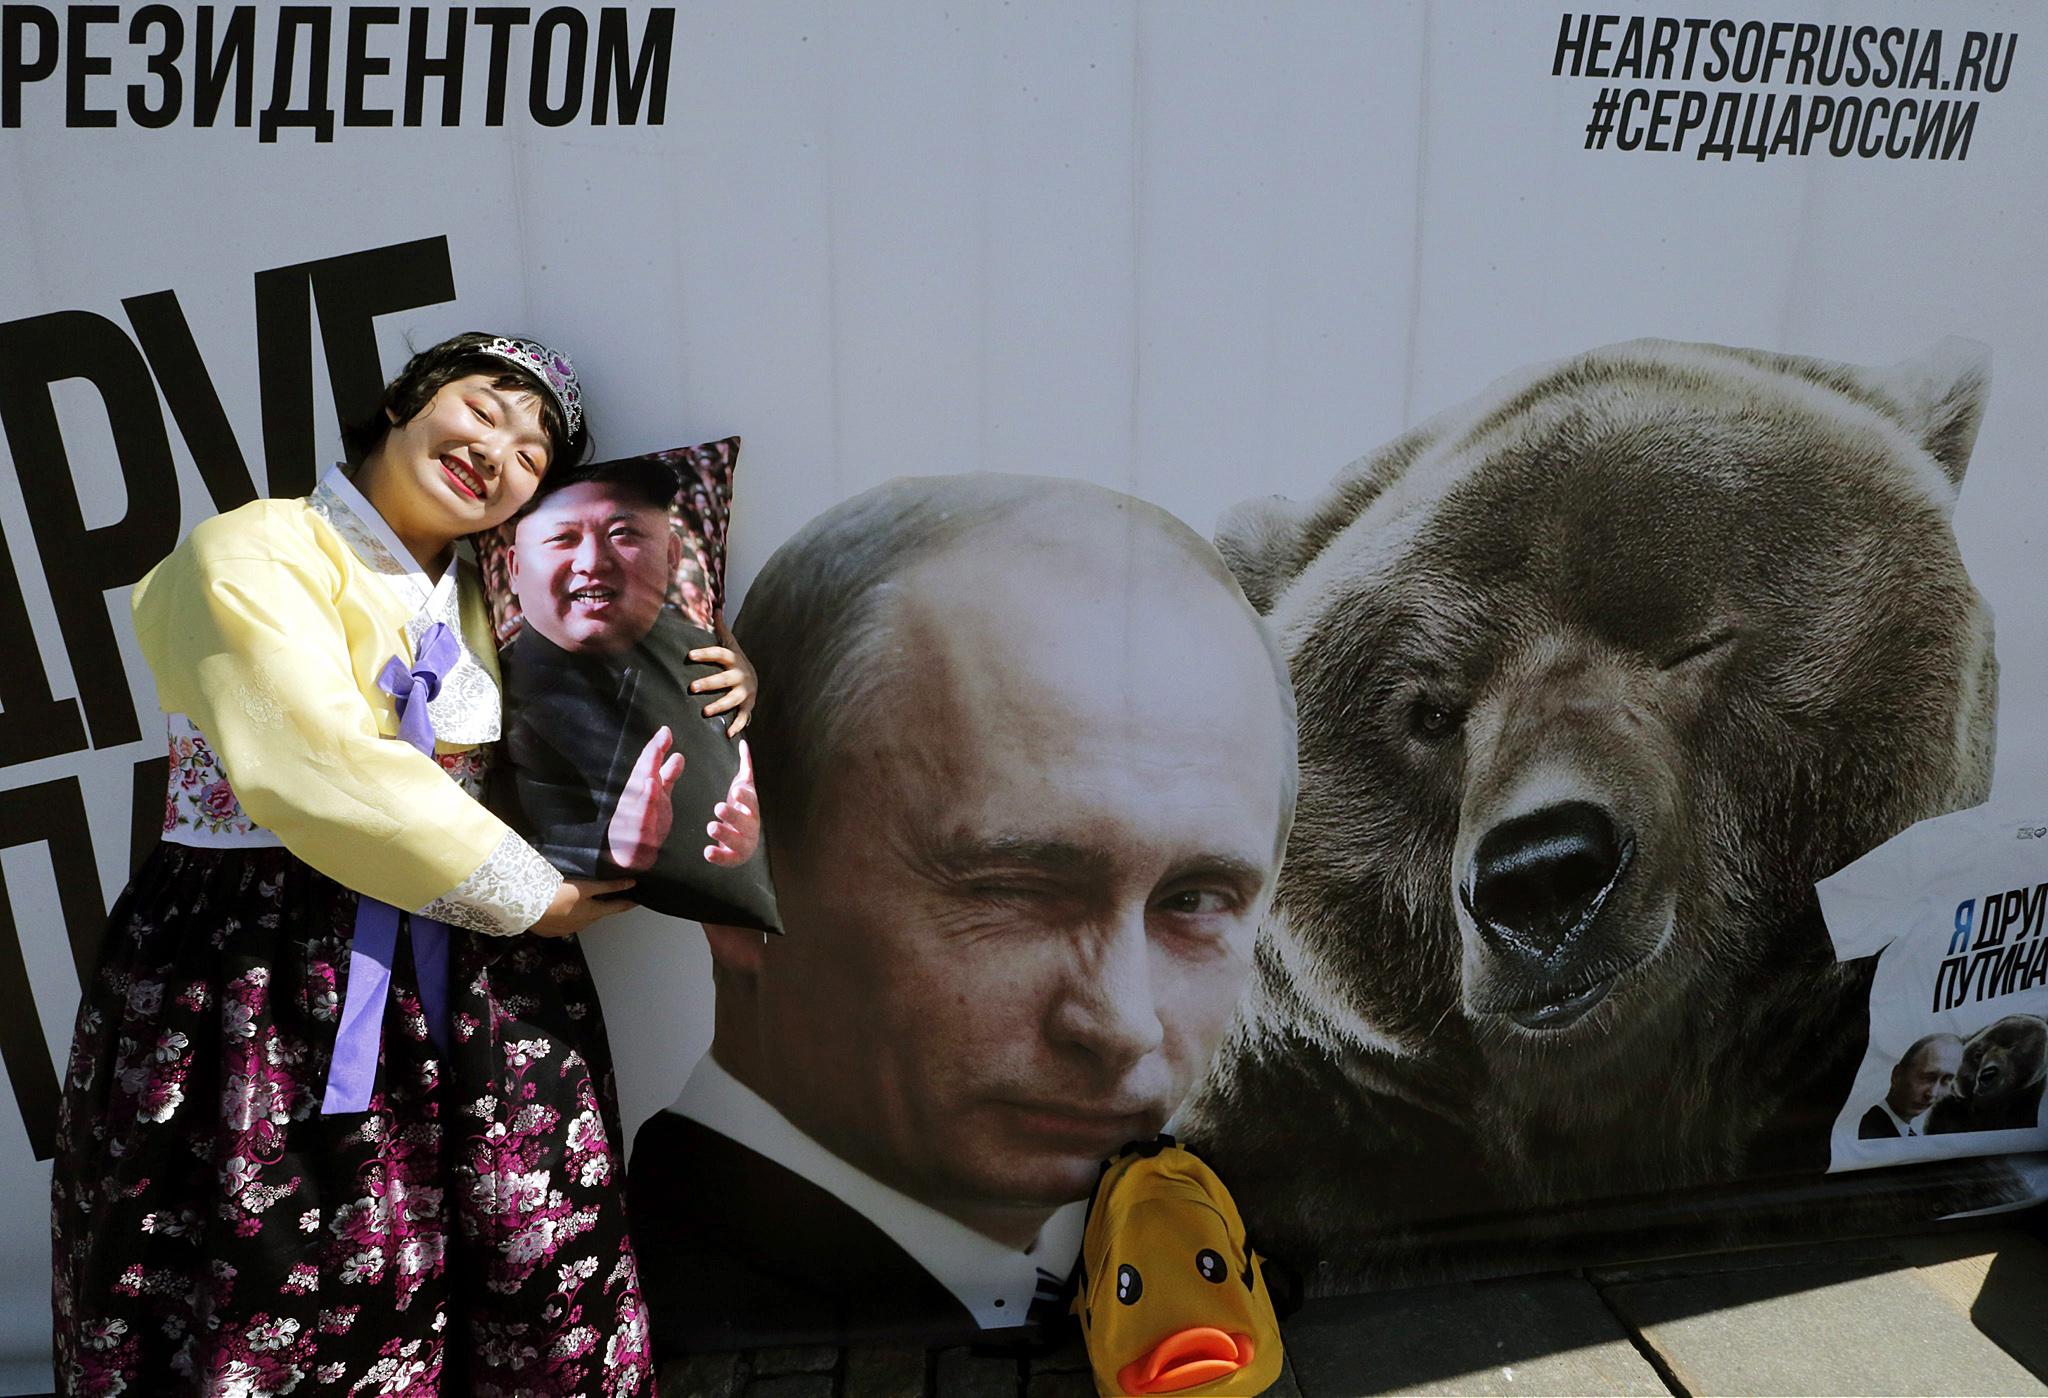 70th anniversary of the end of World War II...epa04738576 North Korean tourist poses with a souvenir pillow decorated with an portrait of Kim Jong-un in front of  a poster showing Vladimir Putin and a bear at the Victory park in Moscow, Russia, 08 May 2015.  On May 09 Russia will celebrate the 70th anniversary of the victory of the Soviet Union and it's Allies over Nazi Germany in WWII.  EPA/ANATOLY MALTSEV